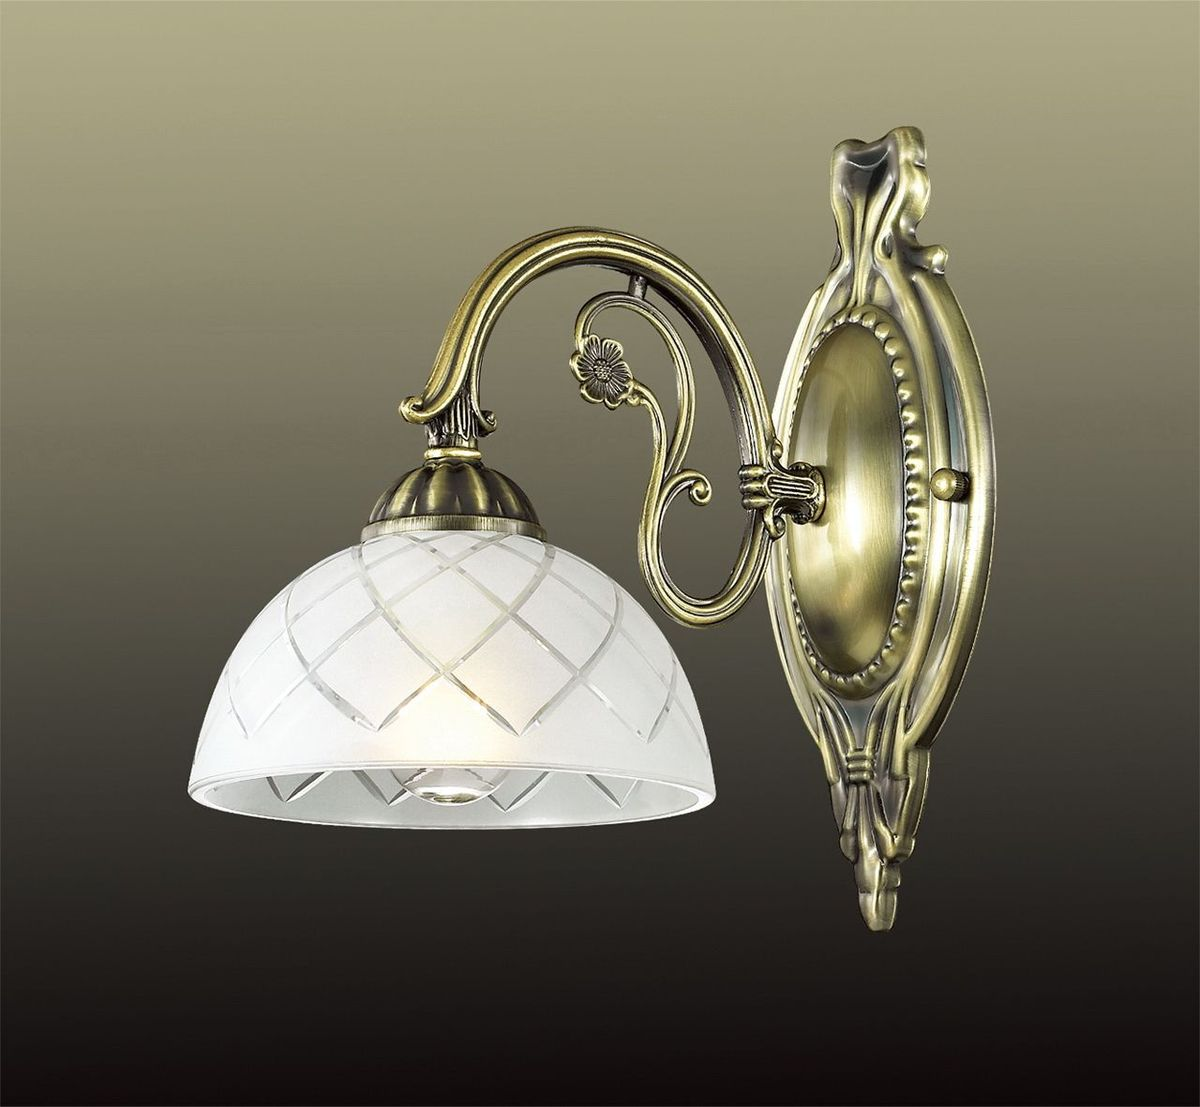 Бра Odeon Light Emeril, 1 х E27, 60W. 2945/1W2945/1W